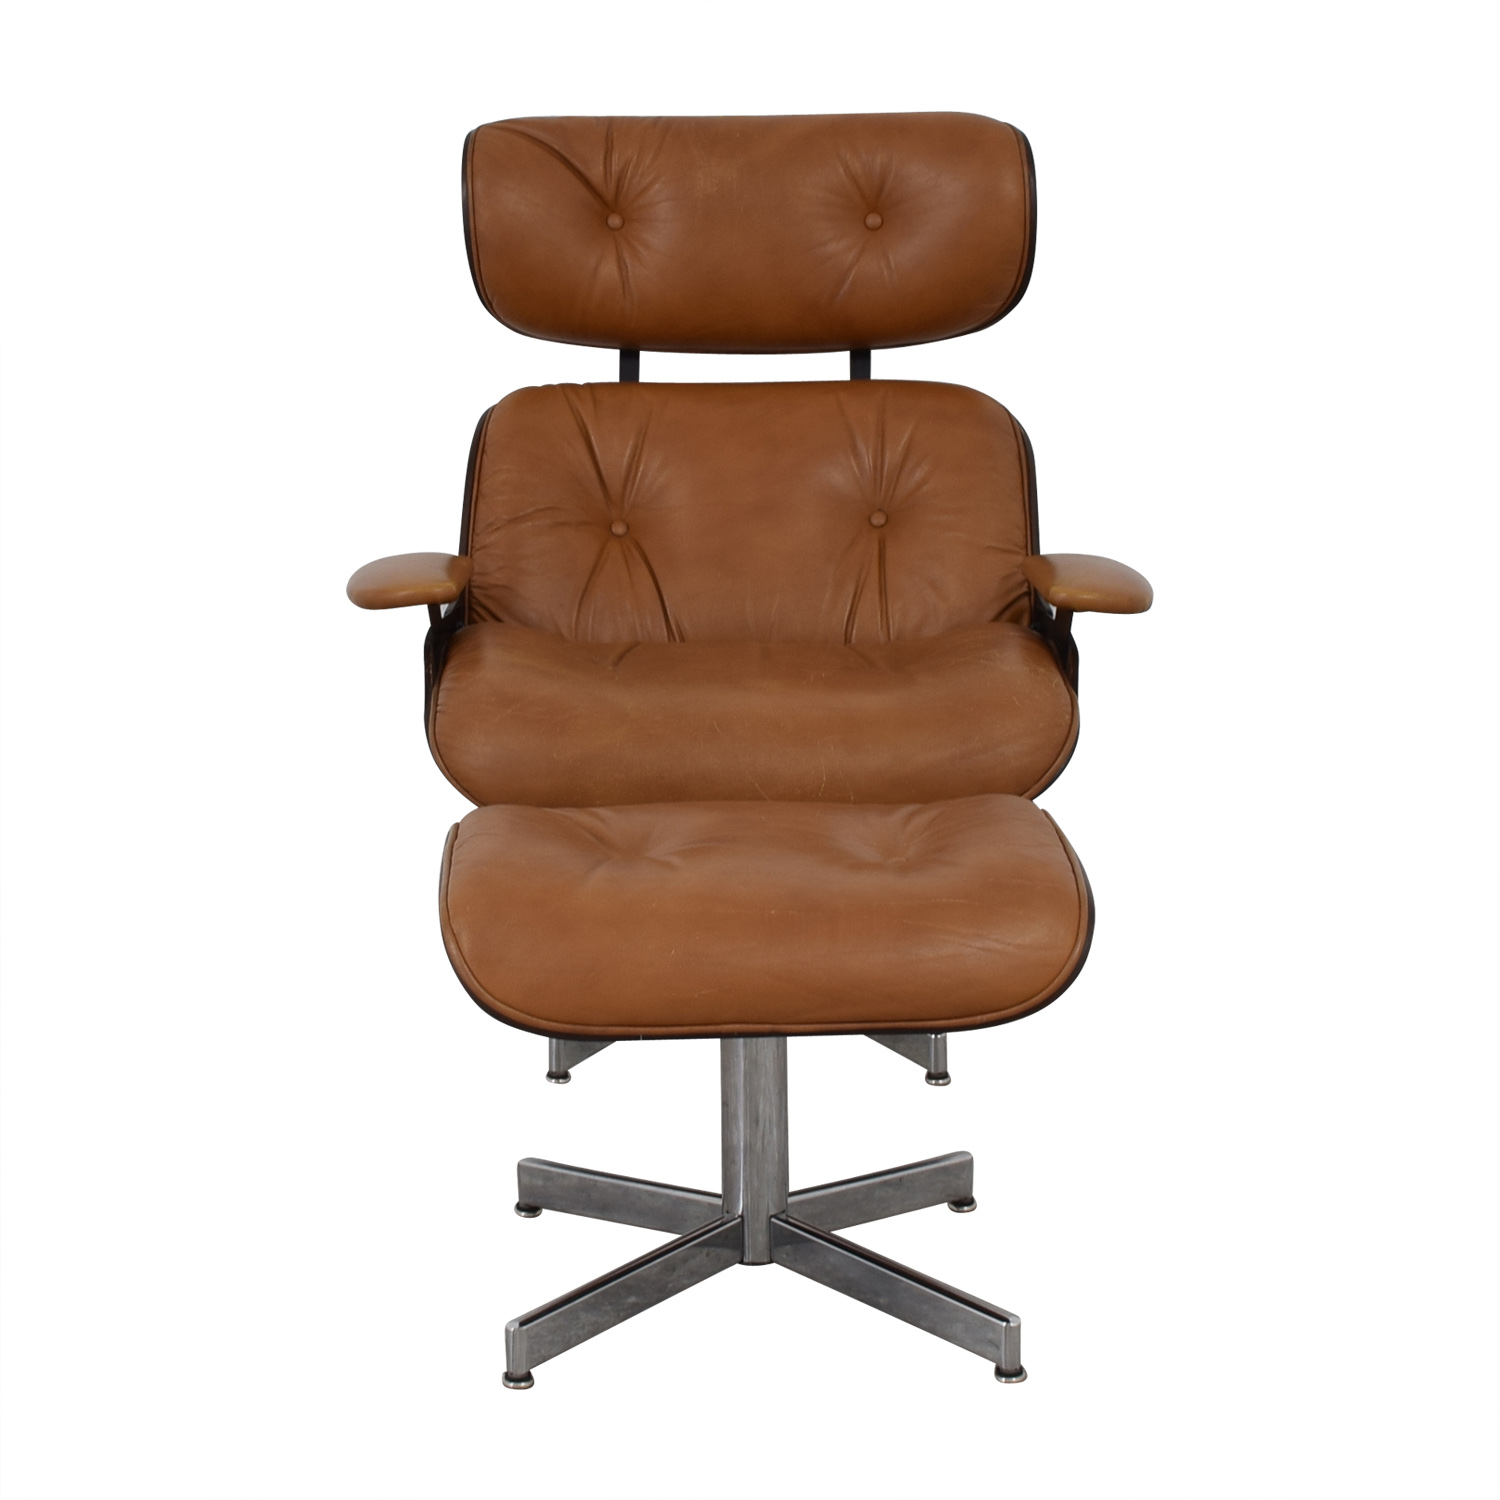 Excellent 55 Off Plycraft Plycraft Eames Style Lounge Chair And Ottoman Chairs Pdpeps Interior Chair Design Pdpepsorg